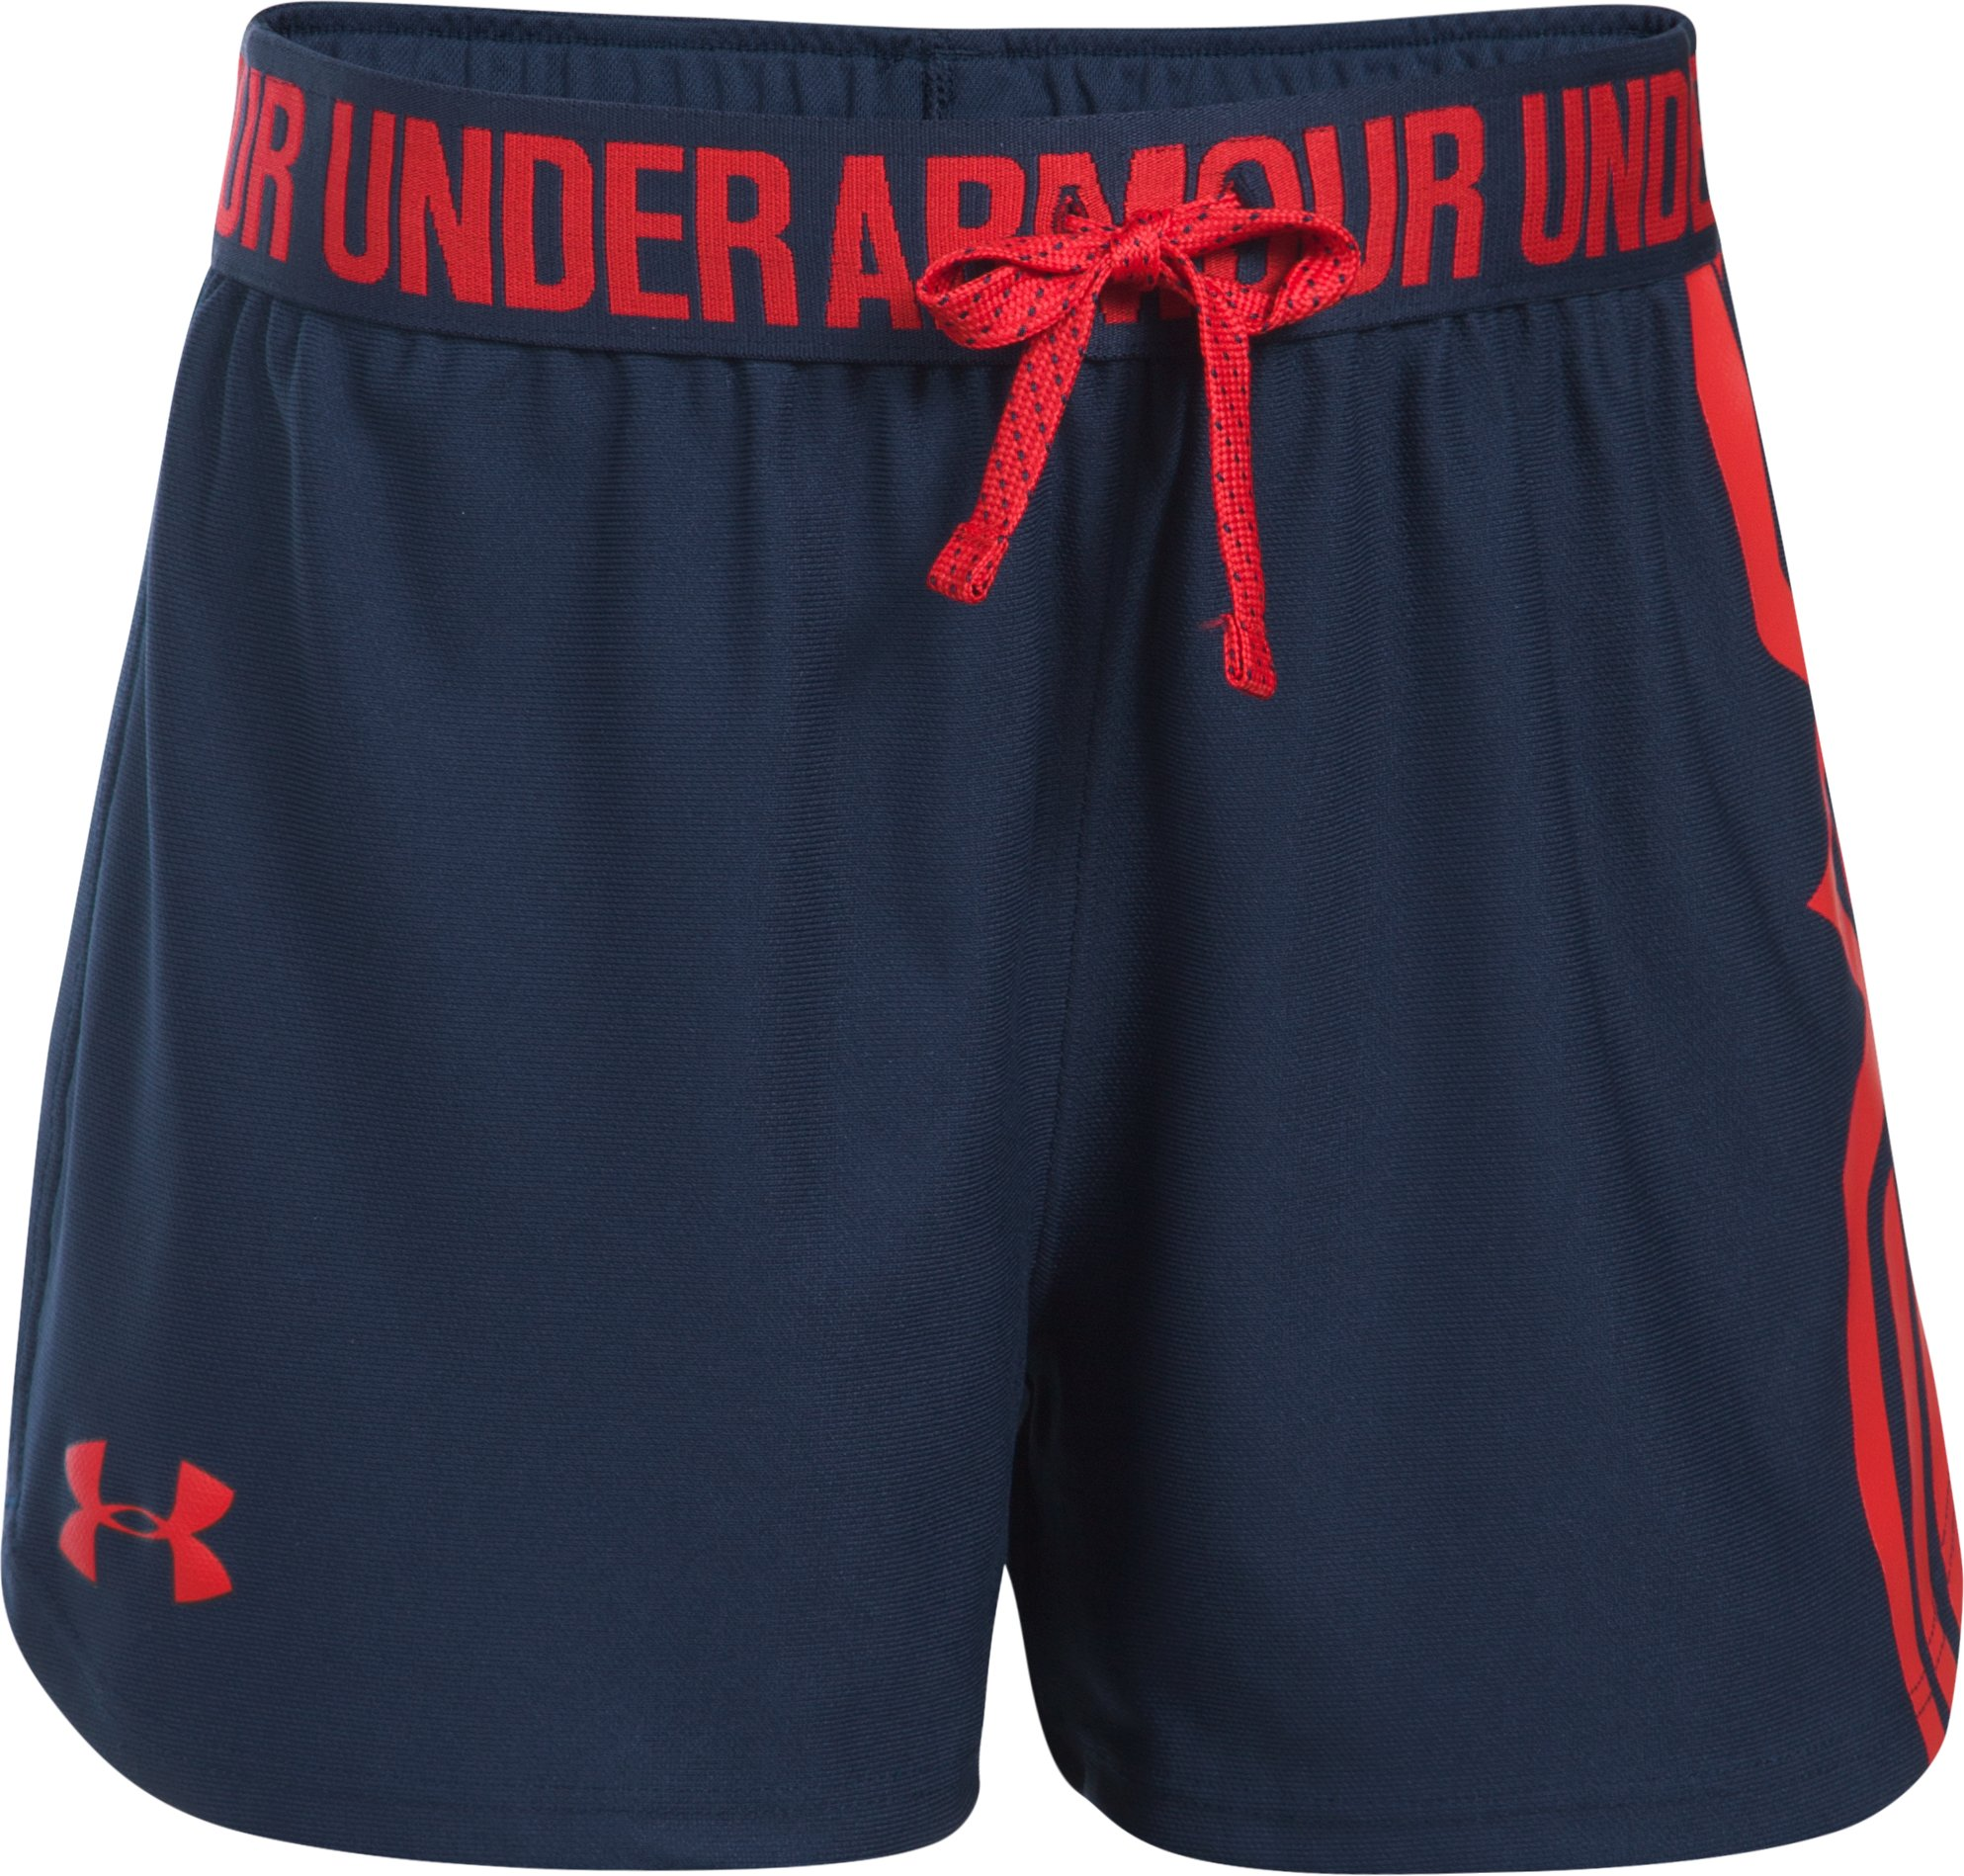 Girls' Under Armour® Alter Ego Wonder Woman Play Up Shorts, Midnight Navy, undefined